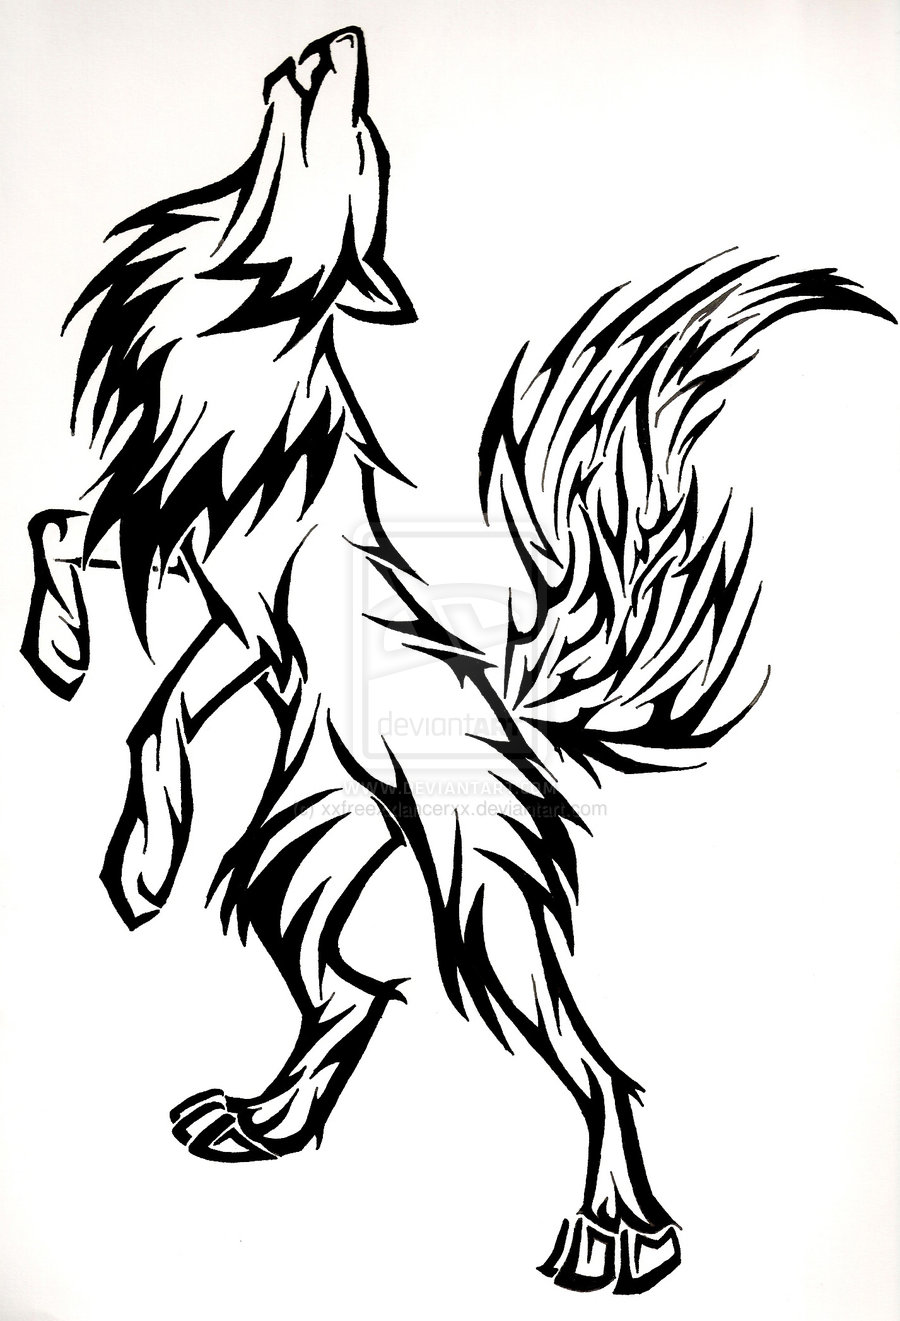 Arctic Wolf clipart outline howling Howling Animated photo#20 Howling head